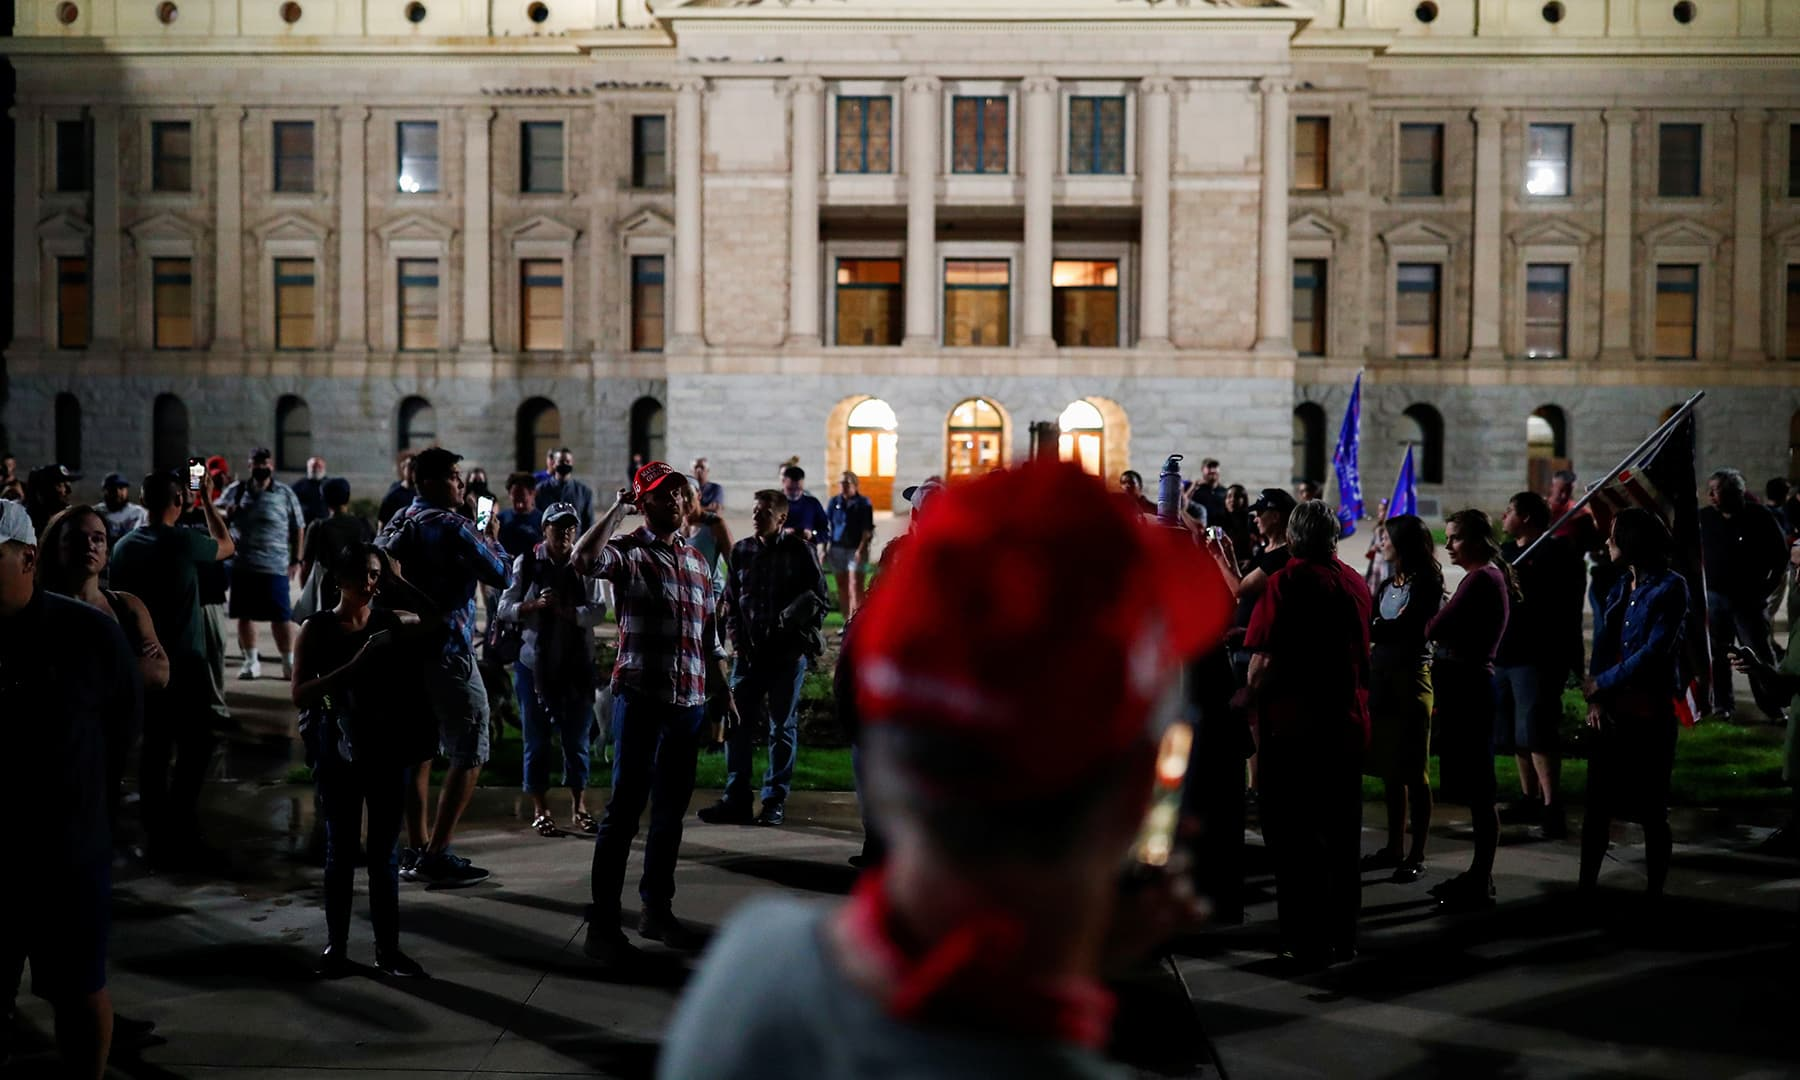 Supporters of US President Donald Trump gather in front of the Arizona State Capitol Building to protest about the early results of the 2020 presidential election. — Reuters